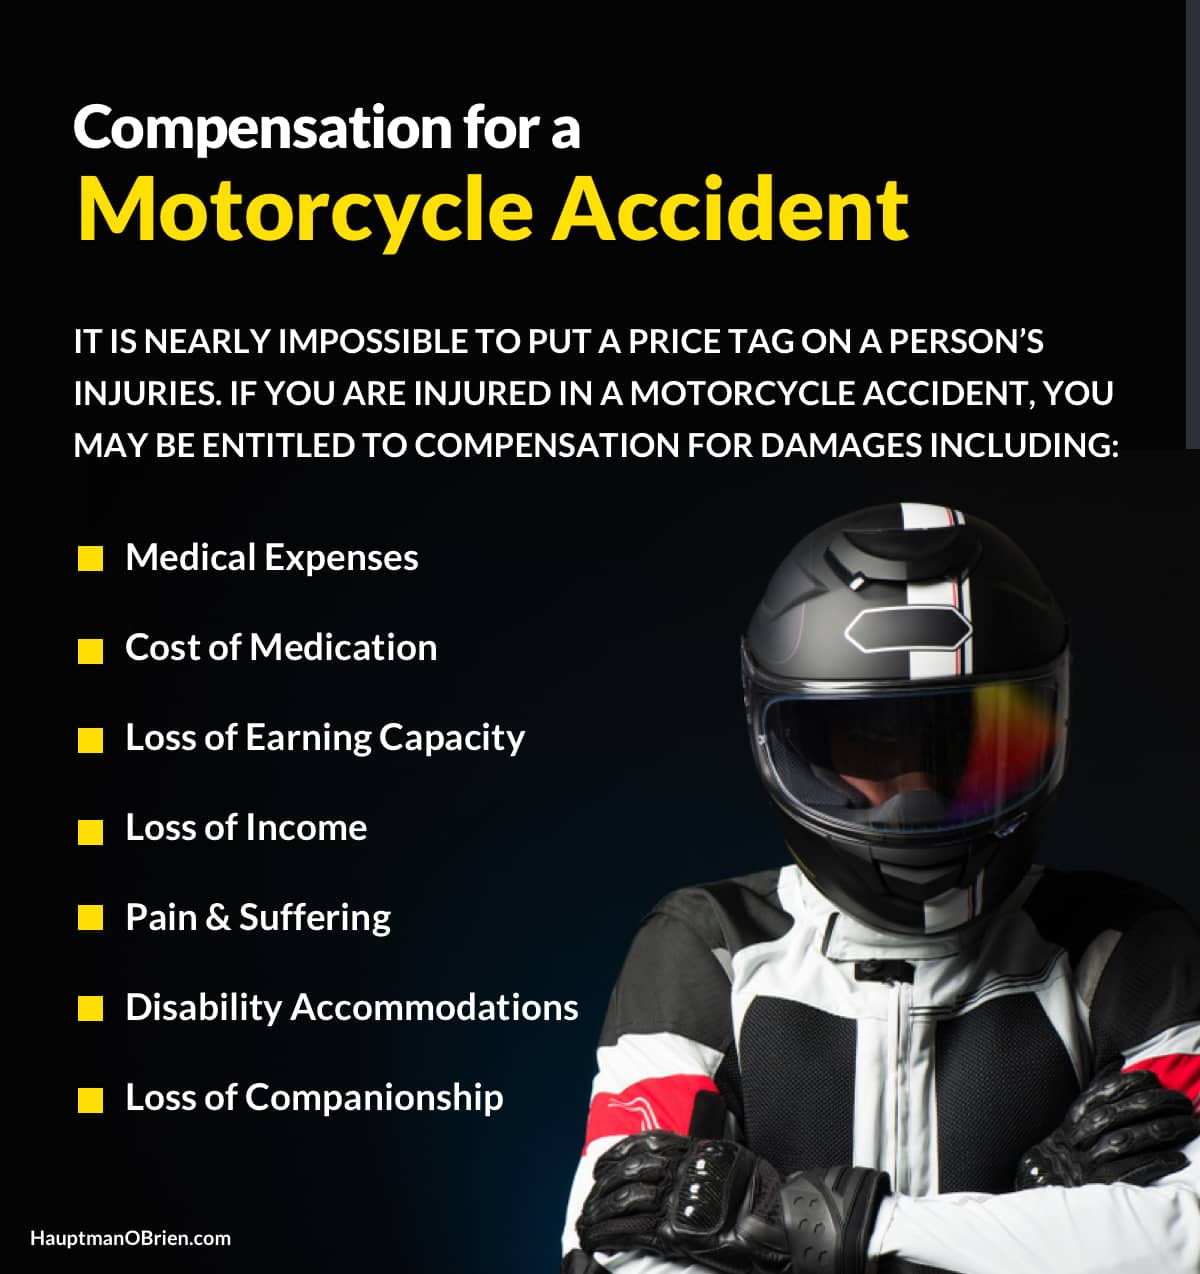 Compensation for Motorcycle Accidents   Hauptman, O'Brien, Wolf and Lathrop